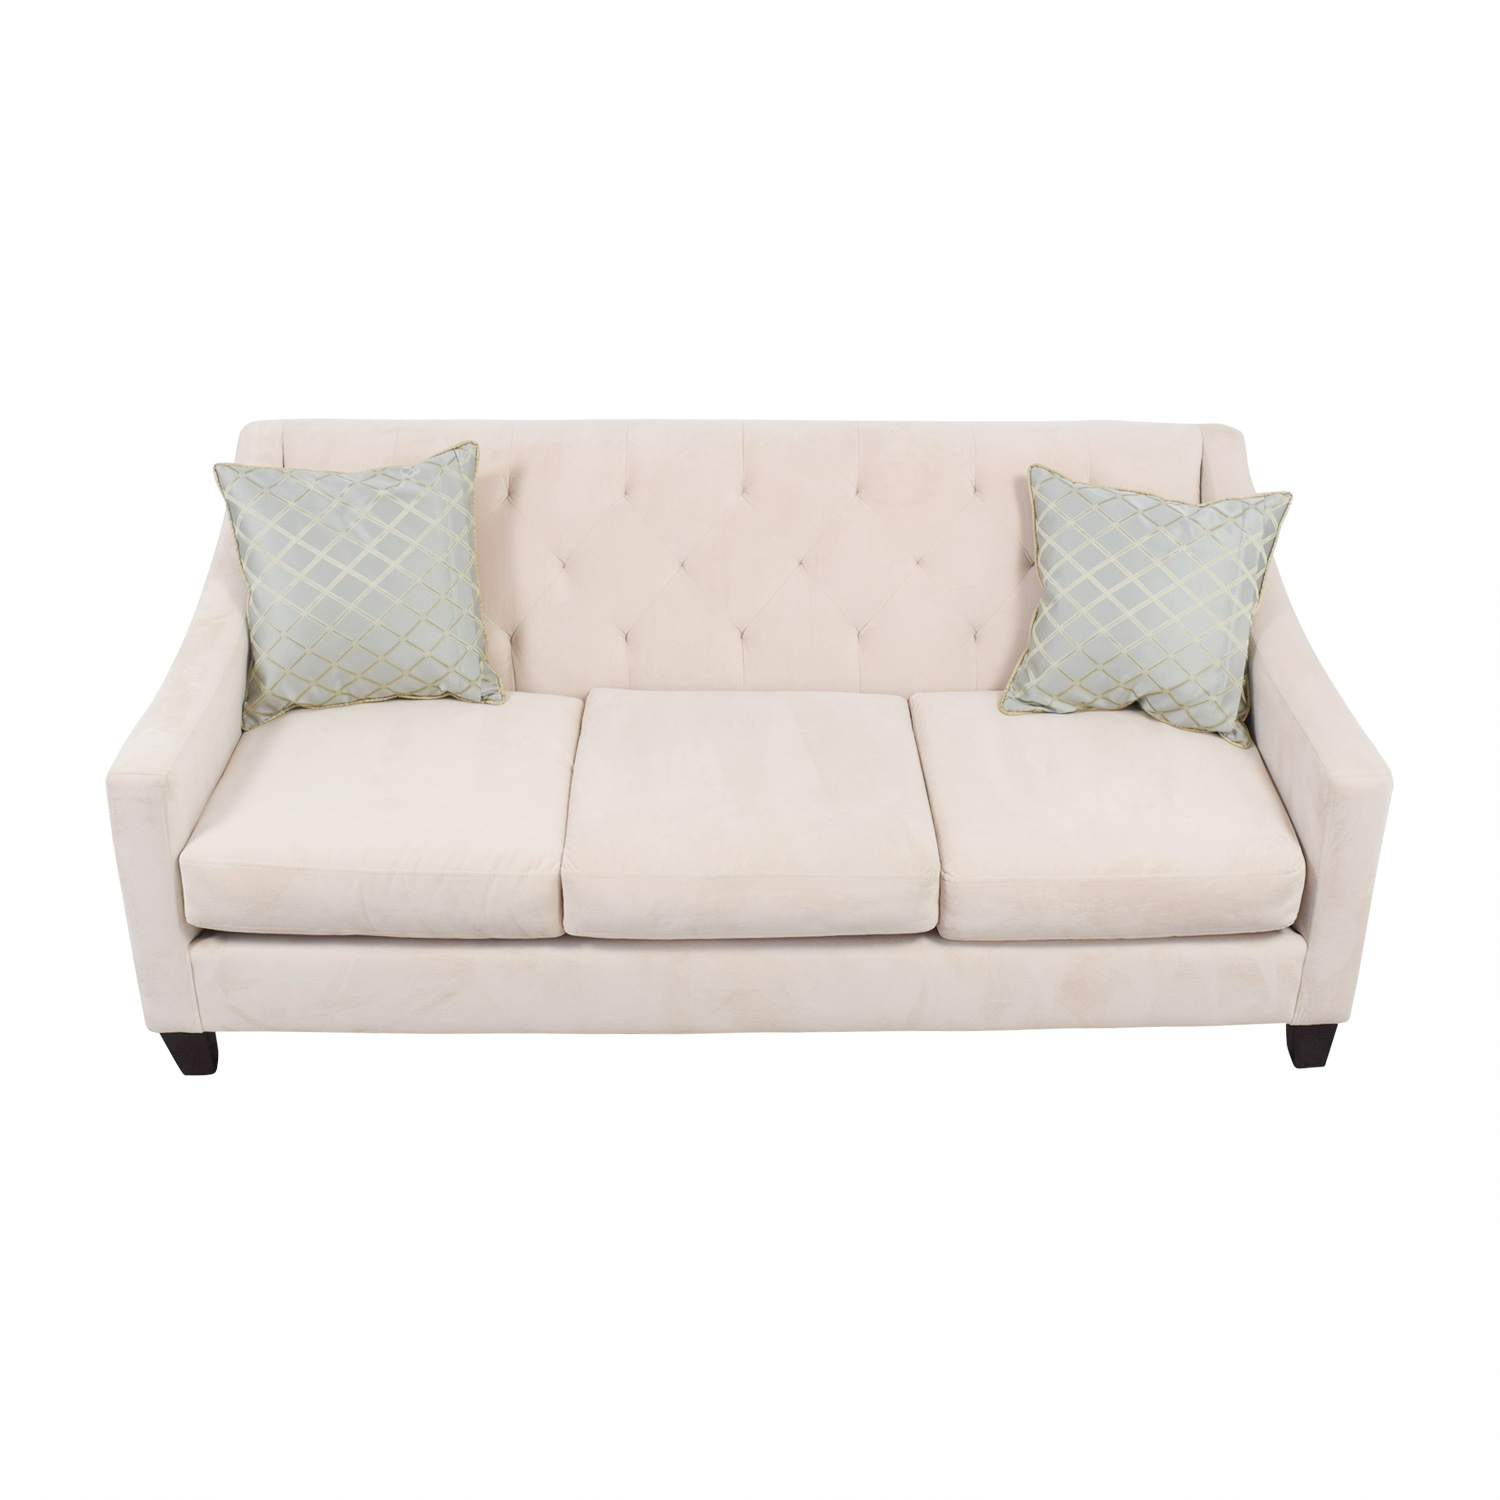 Max Home Max Home Beige Semi-Tufted Three-Cushion Couch on sale